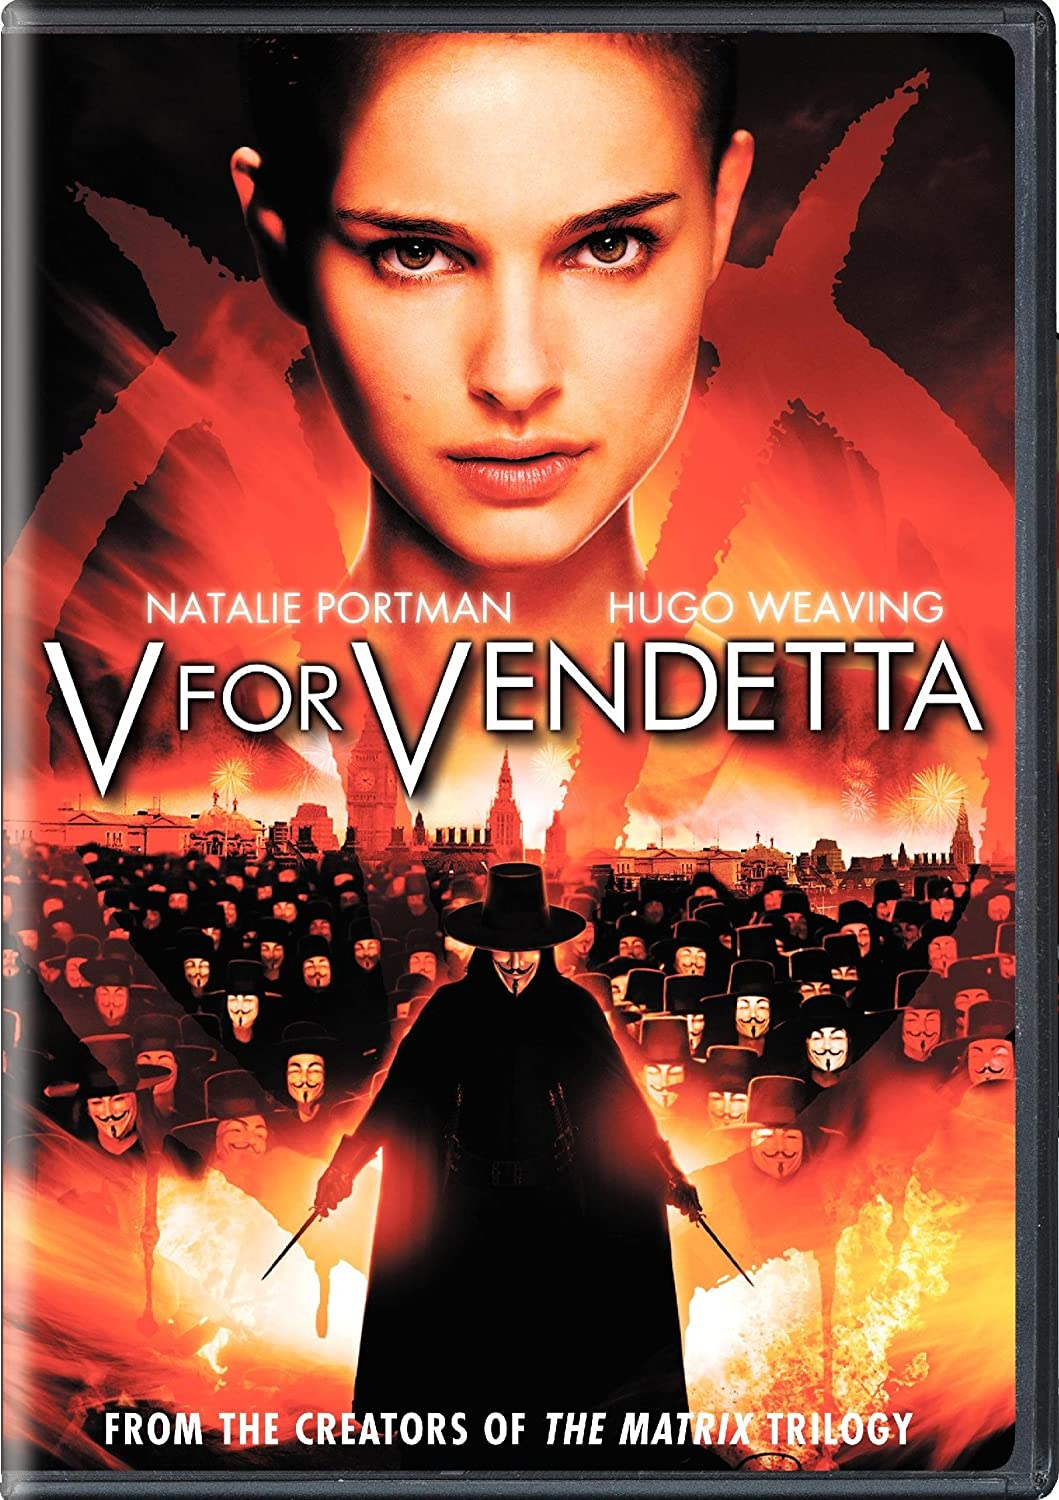 V For Vendetta Widescreen Edition James Mcteigue Alan Moore David Lloyd Natalie Portman Hugo Weaving Stephen Rea John Hurt Stephen Fry Tim Pigott Smith Rupert Graves Roger Allam Ben Miles Sinéad Cusack